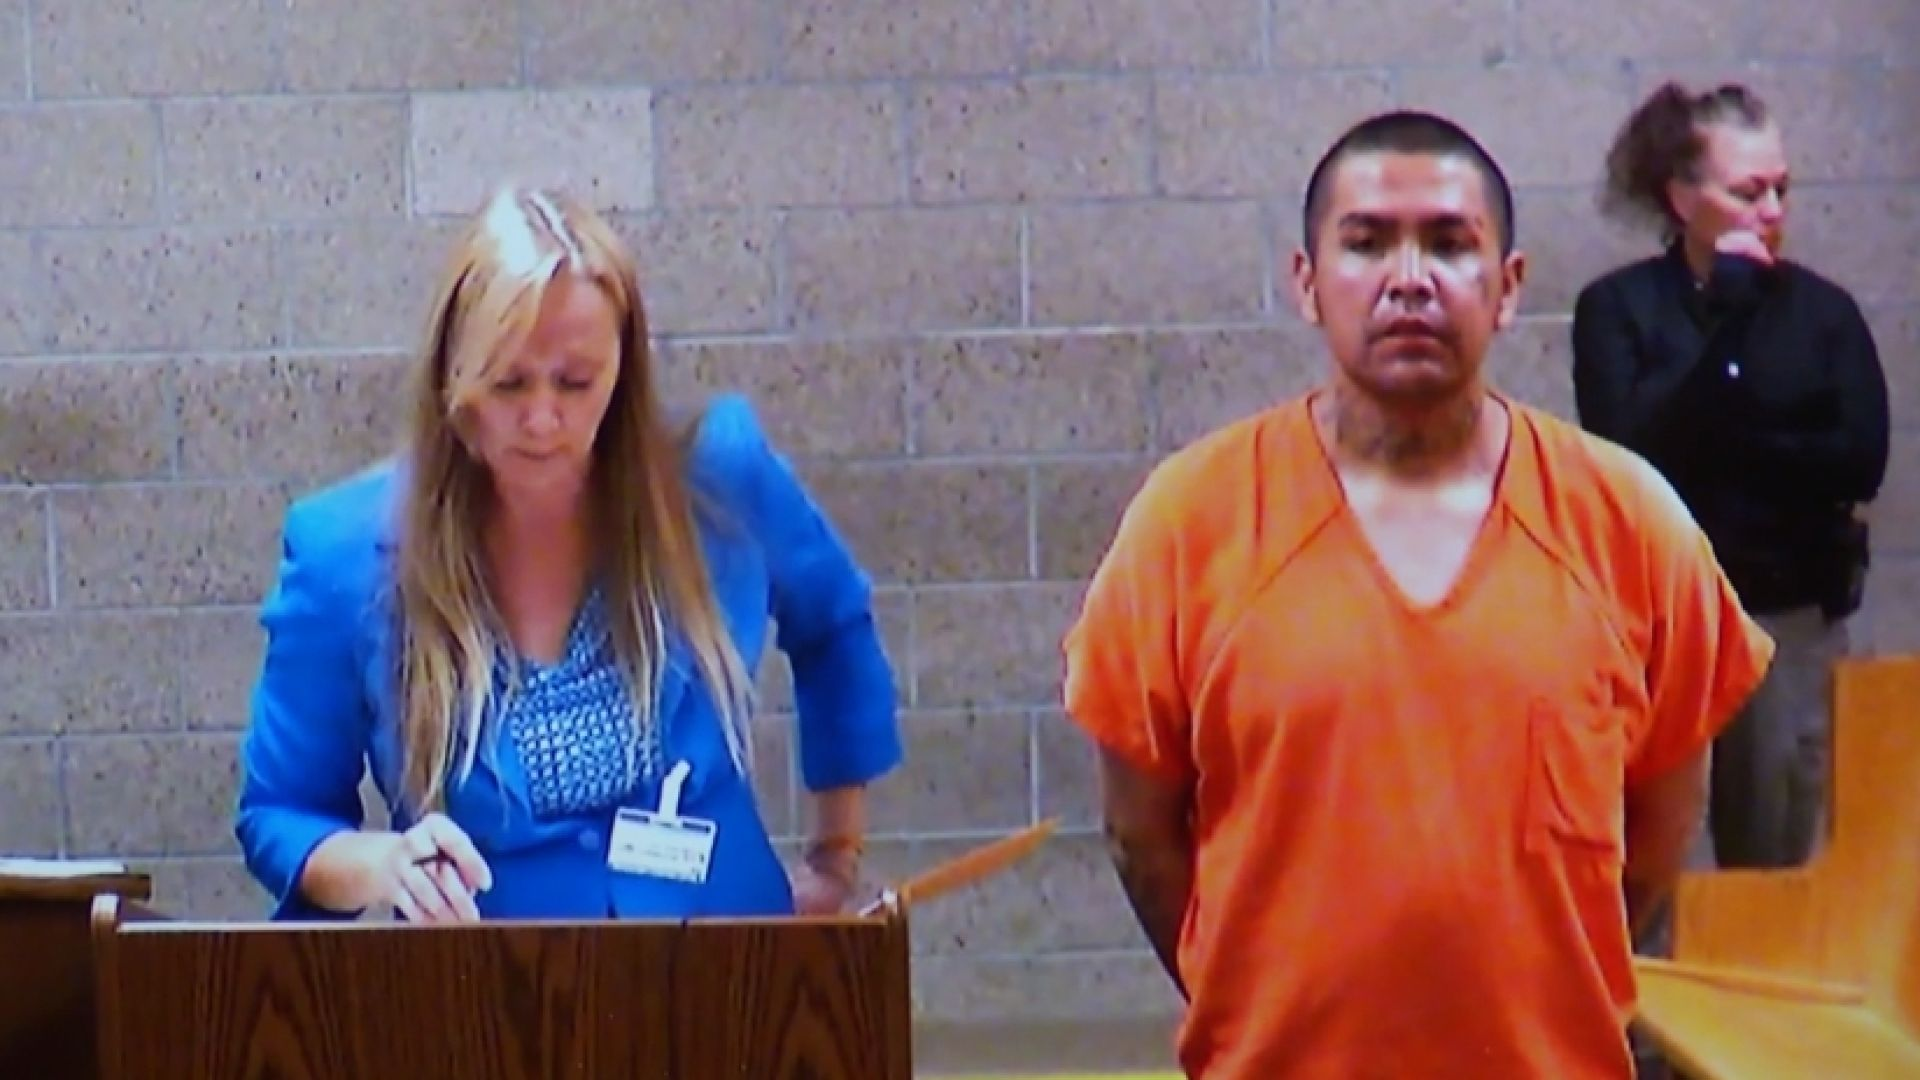 An Albuquerque woman said a complete stranger tried to take one of her children and run off when she wasn't looking.